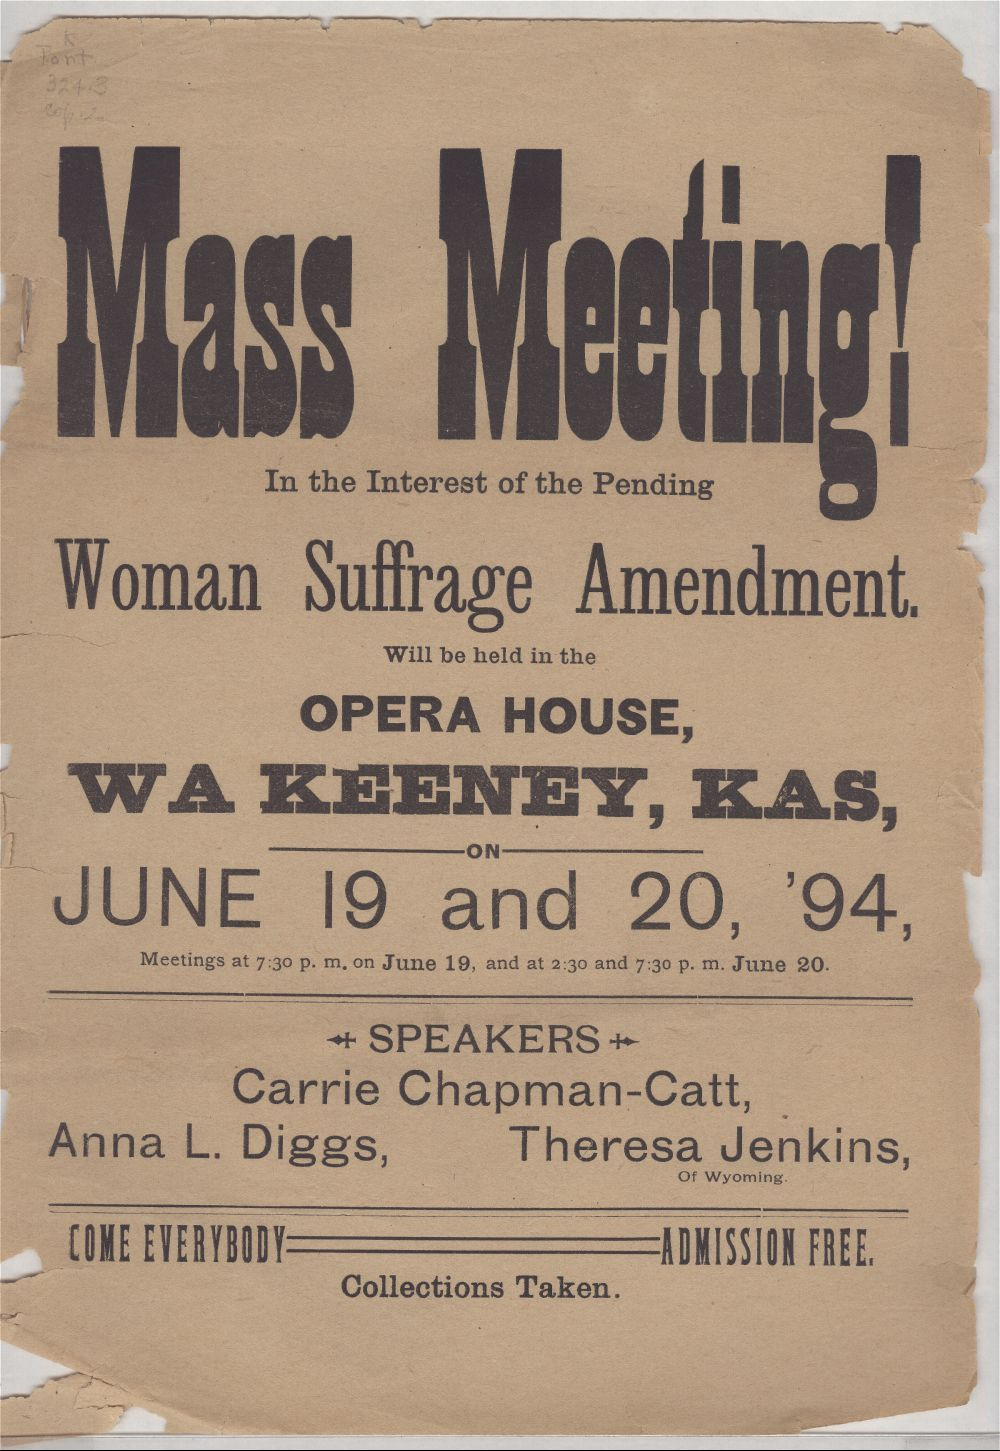 Mass meeting! In the interest of the pending woman suffrage amendment